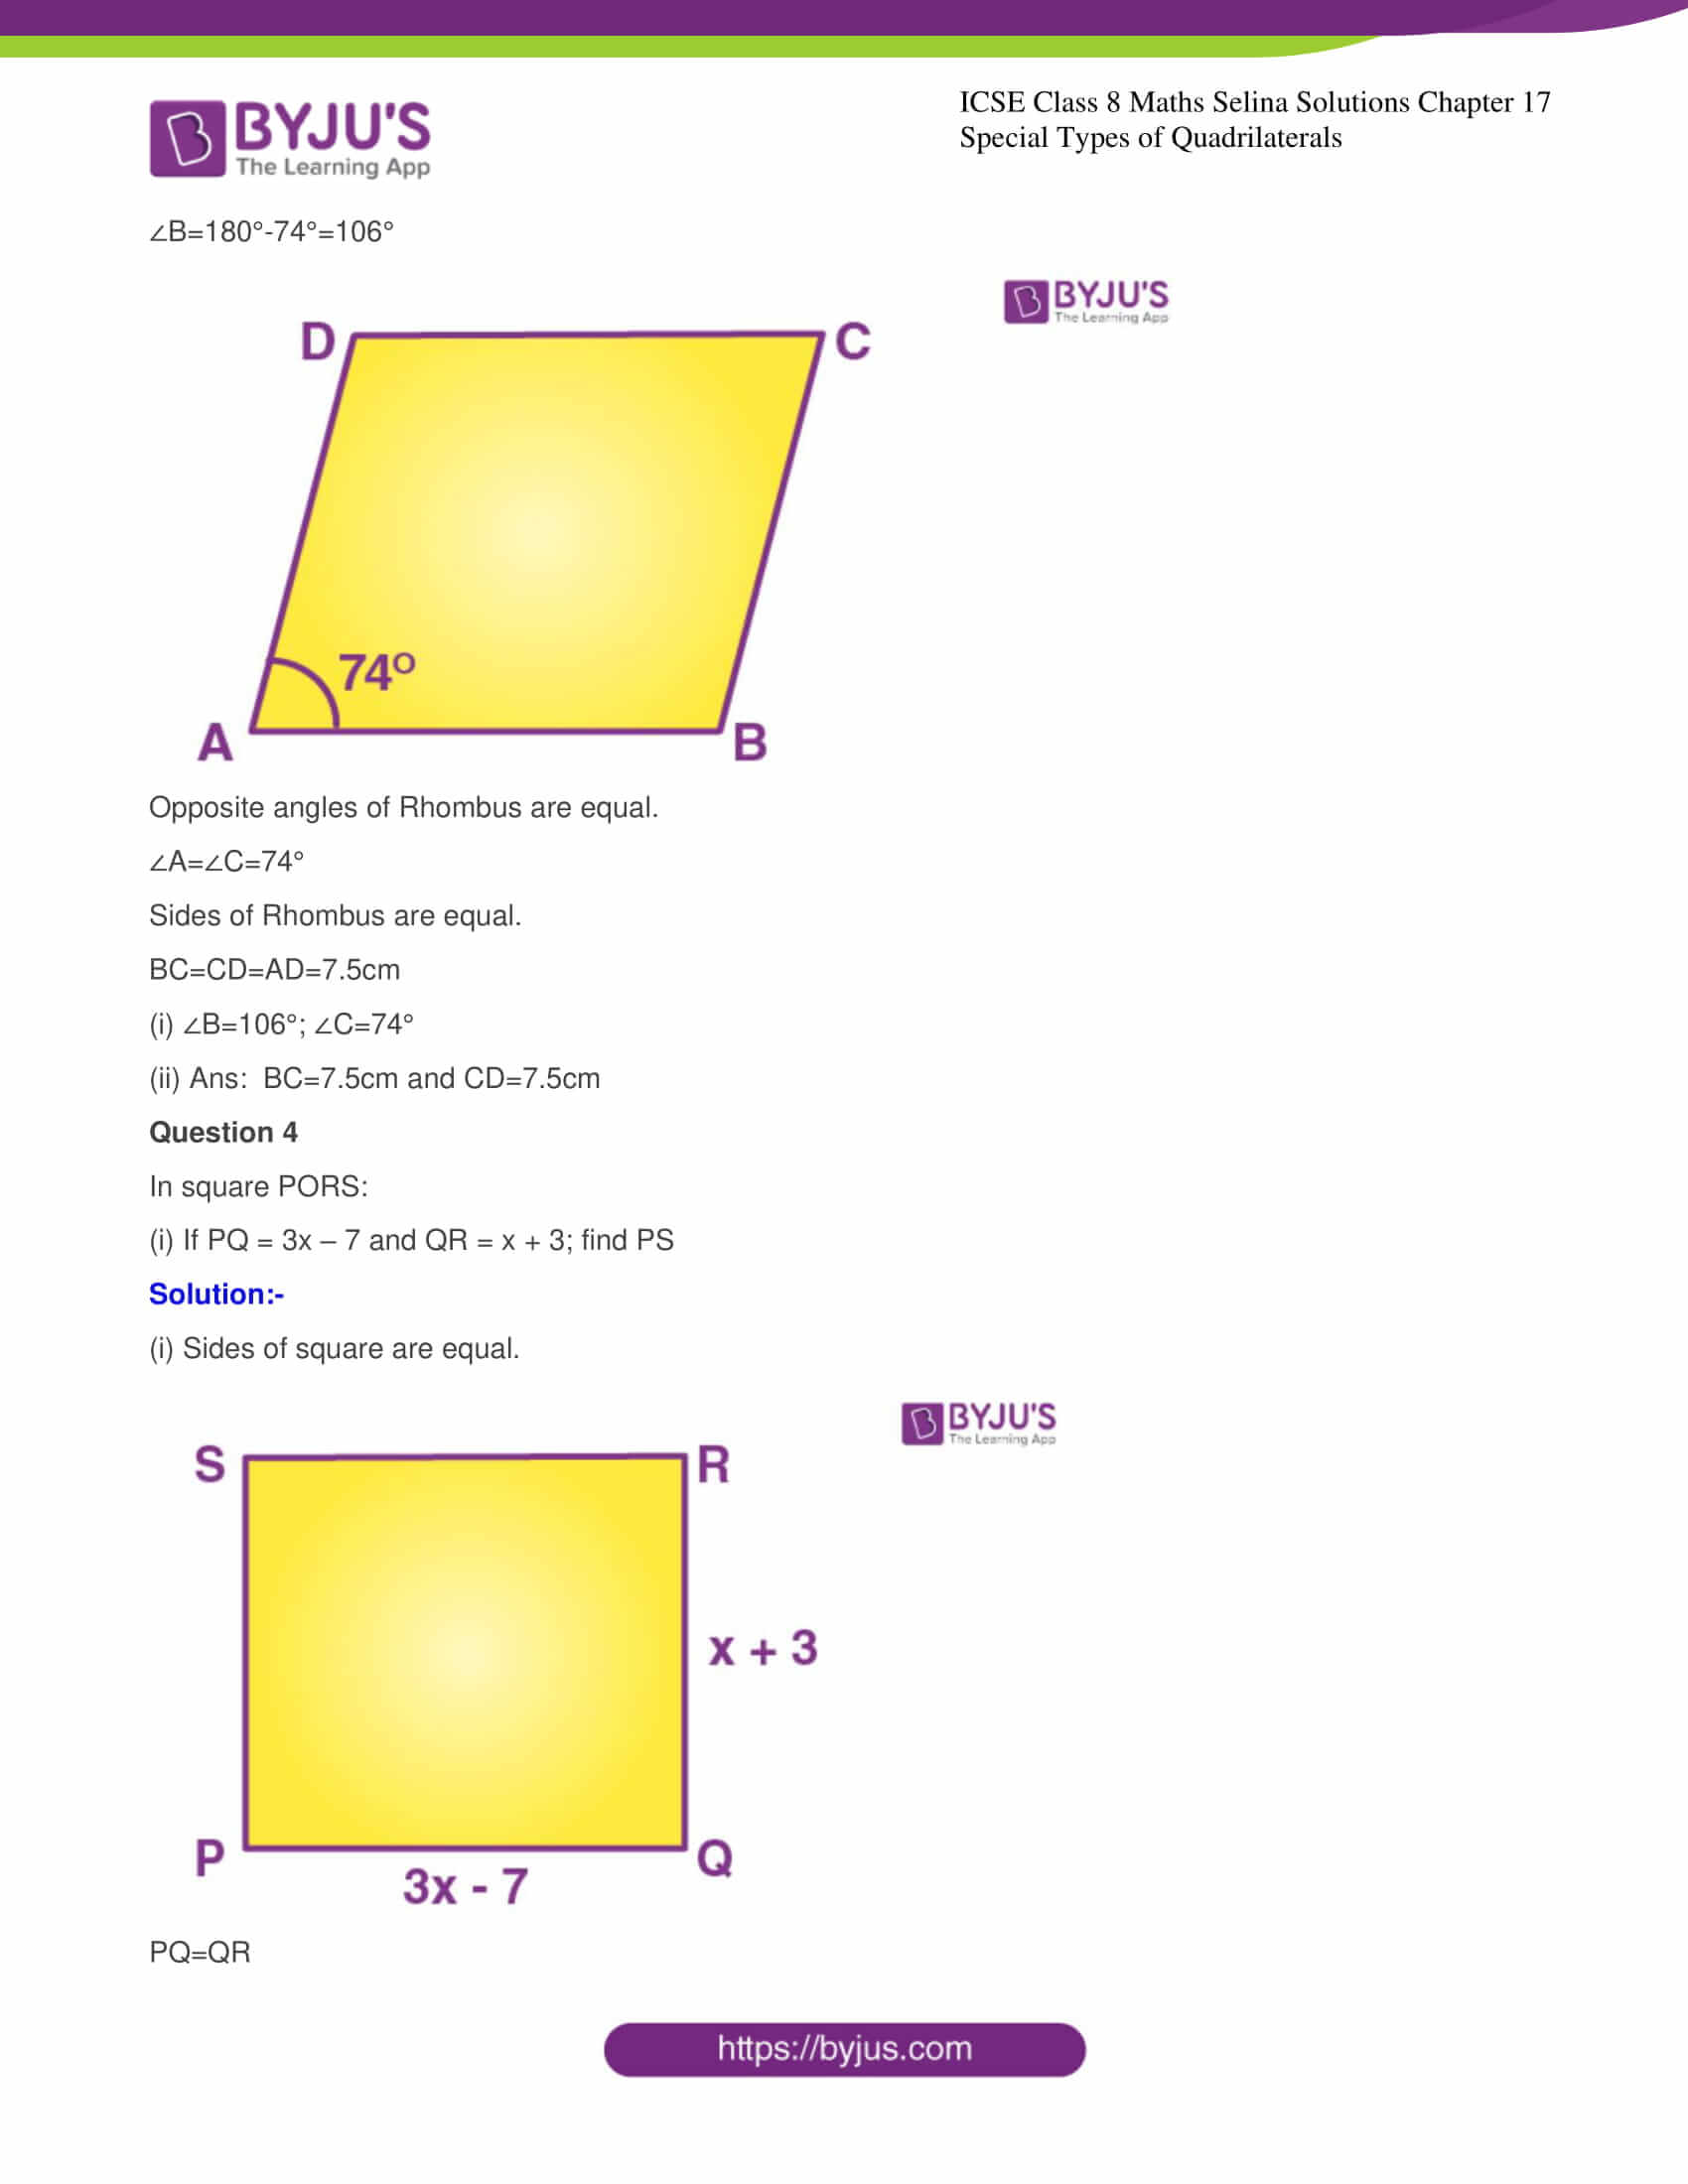 icse class 8 maths may3 selina solutions chapter 17 special types of quadrilaterals 03